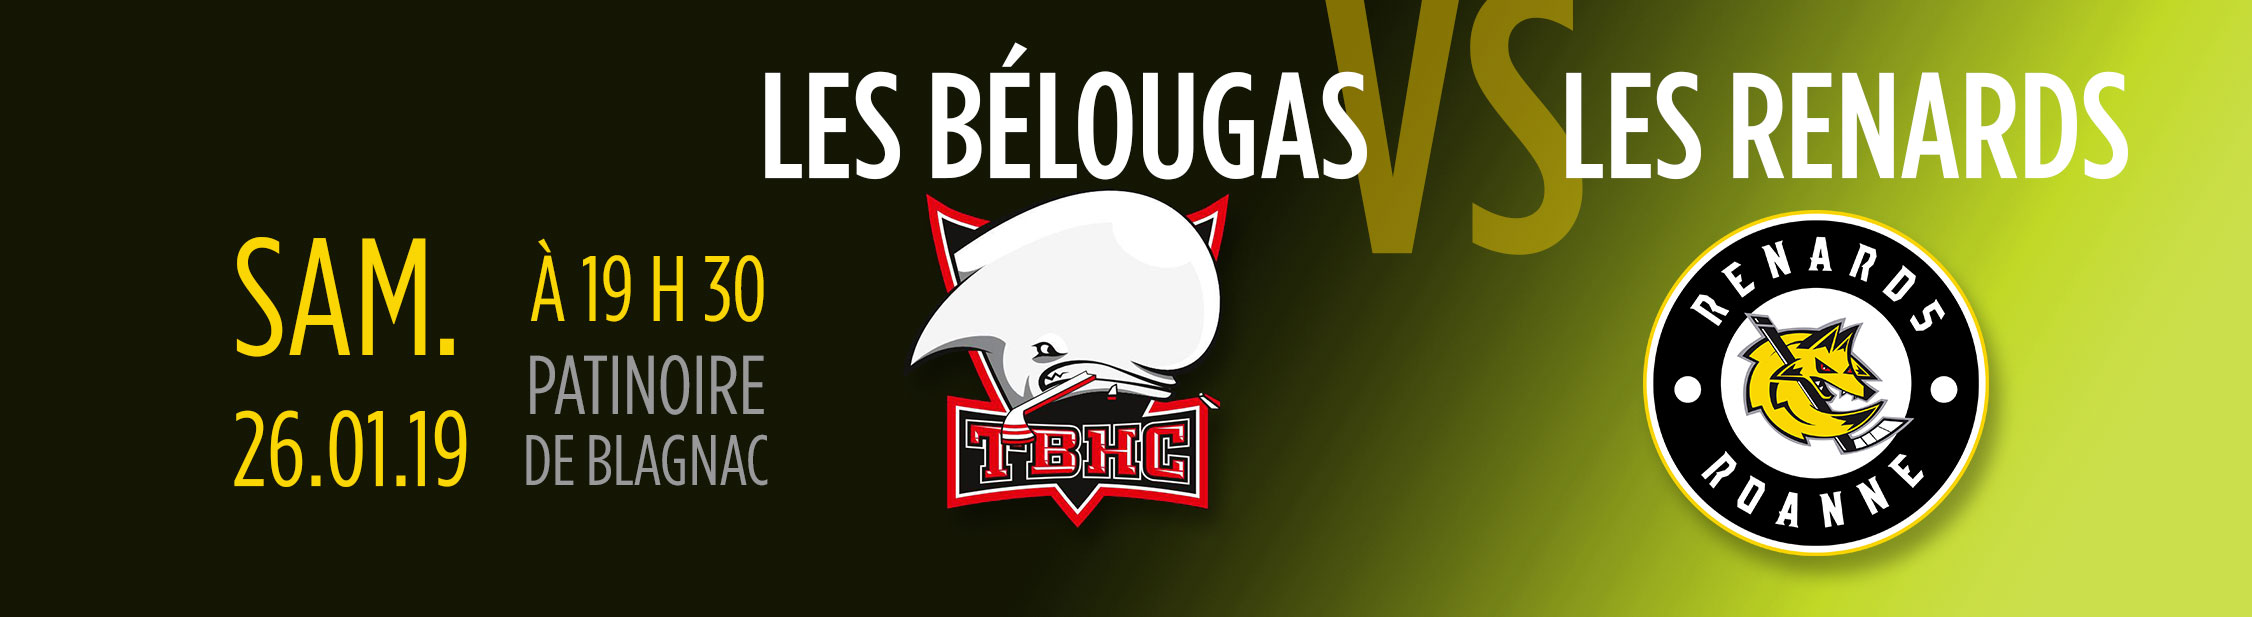 visuel hockey belougas renards